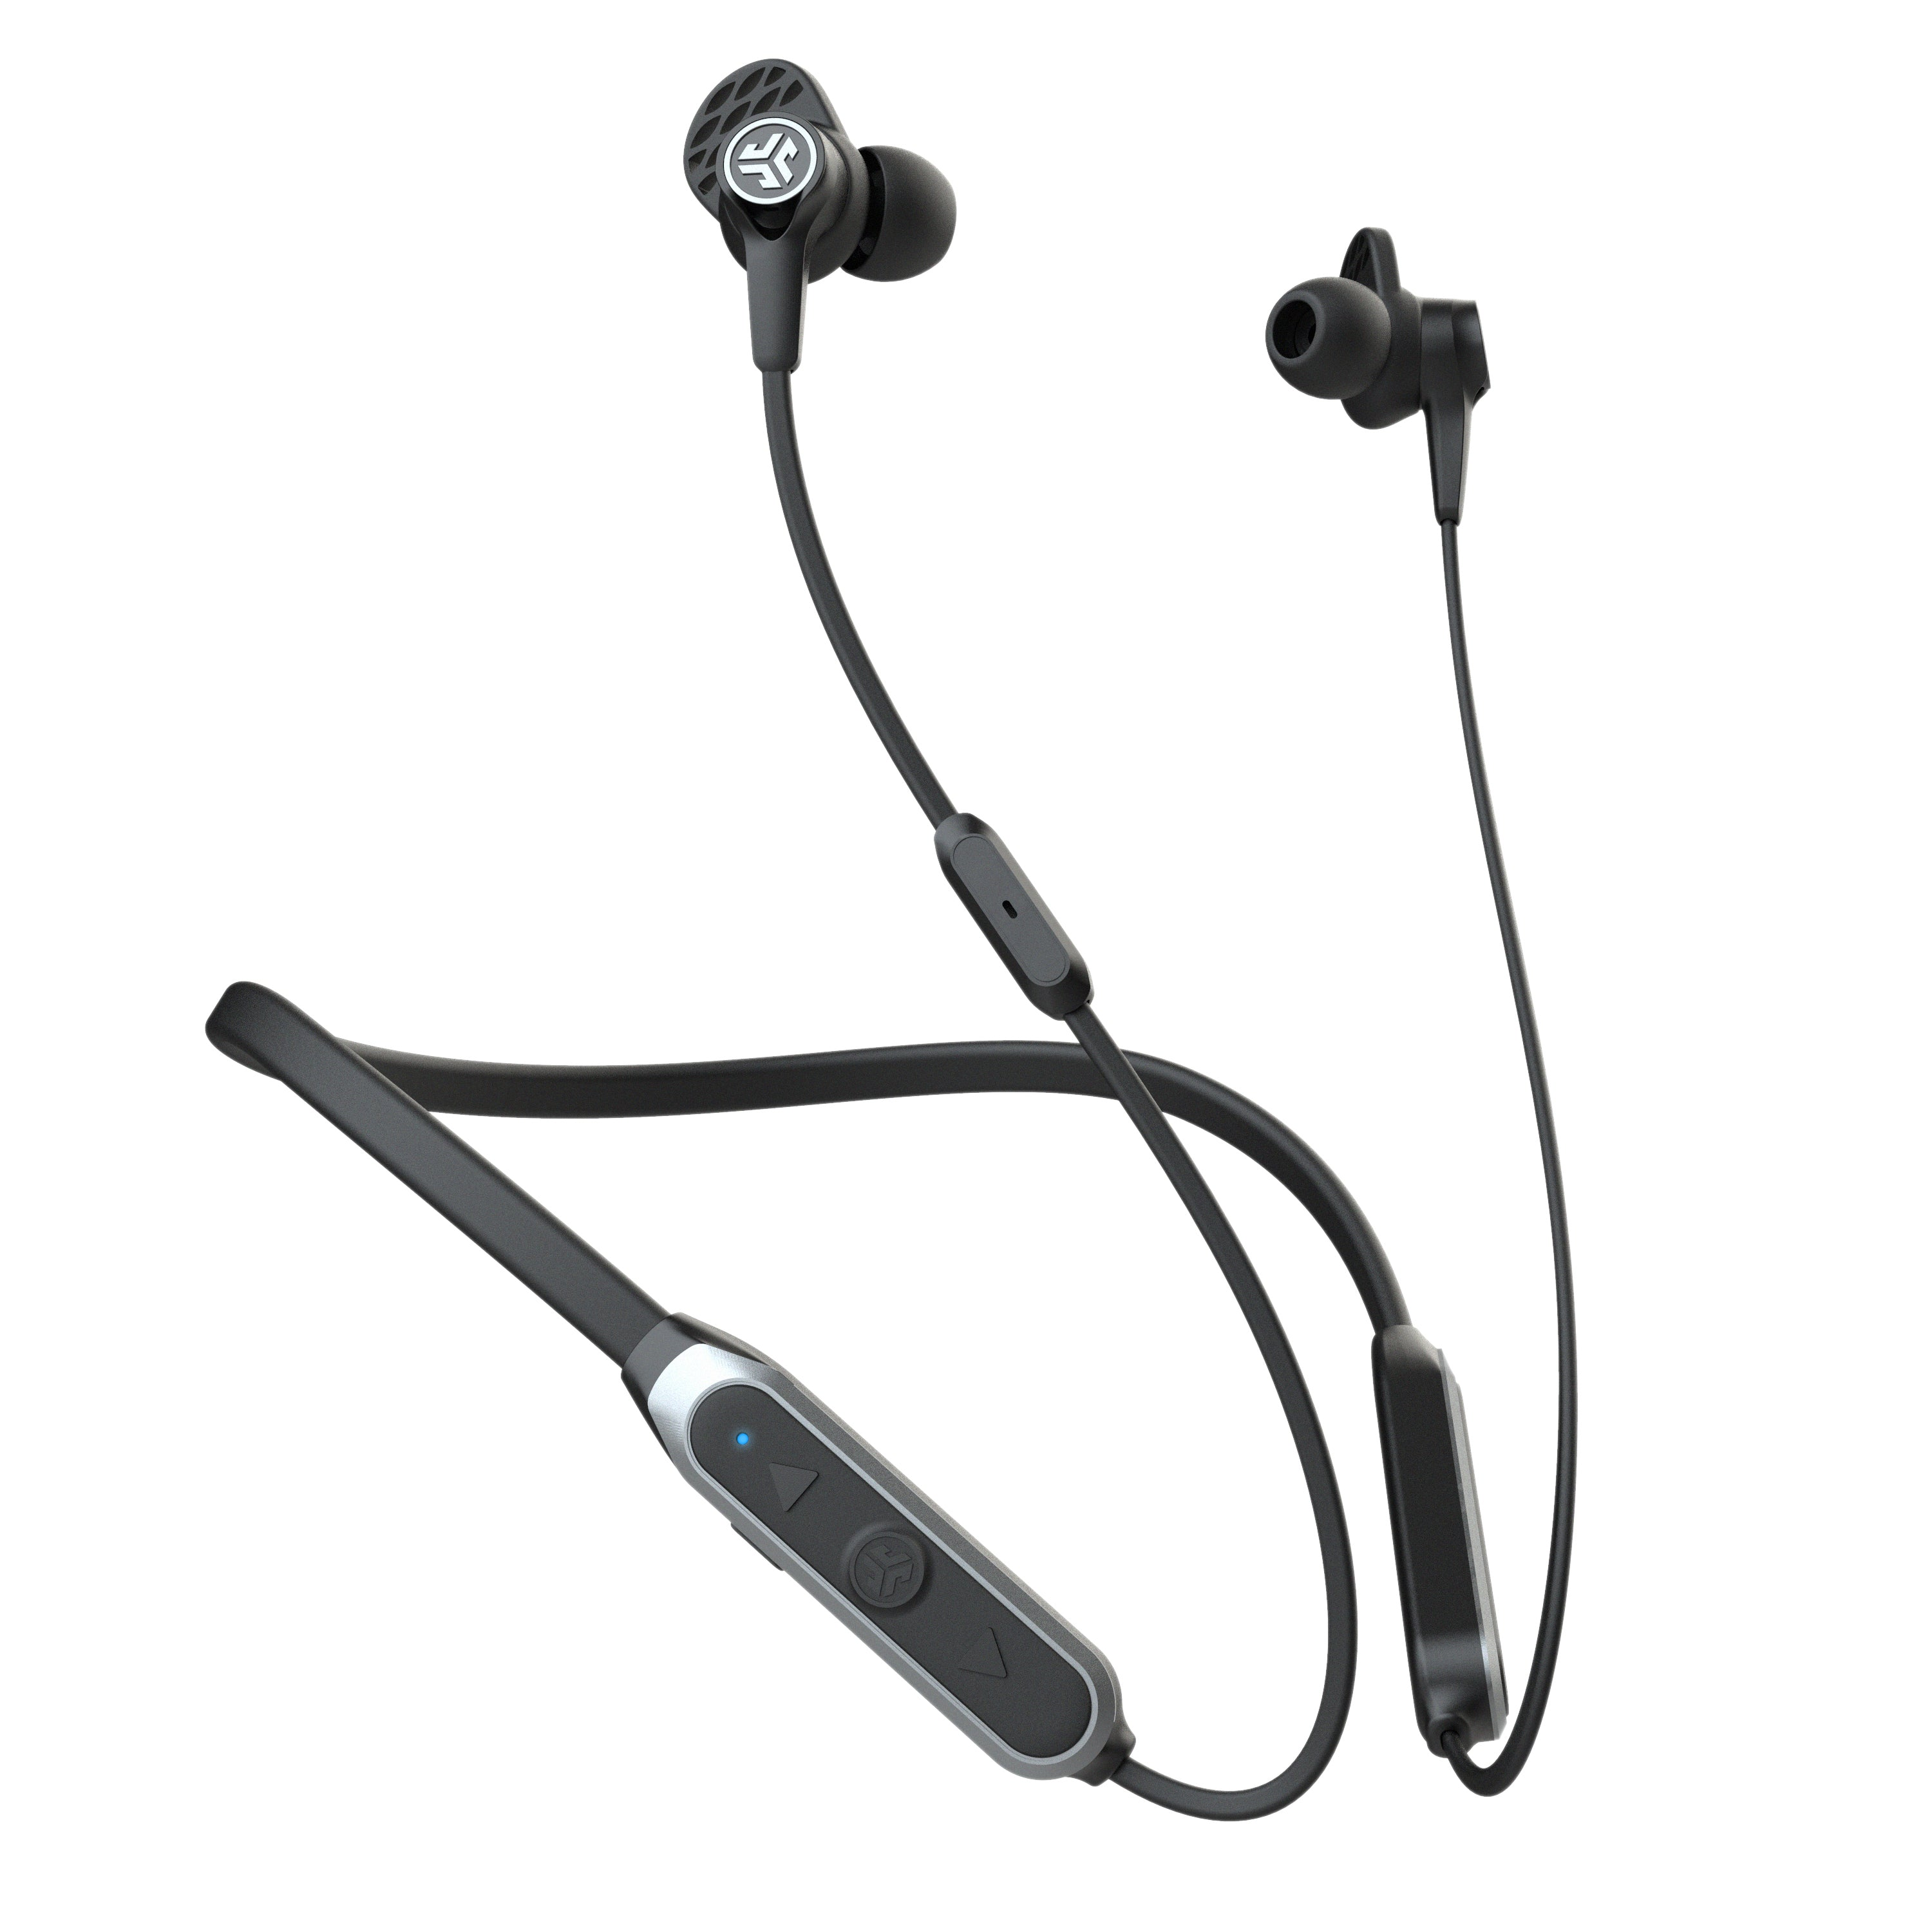 Black Epic Executive Wireless Earbuds with Controls